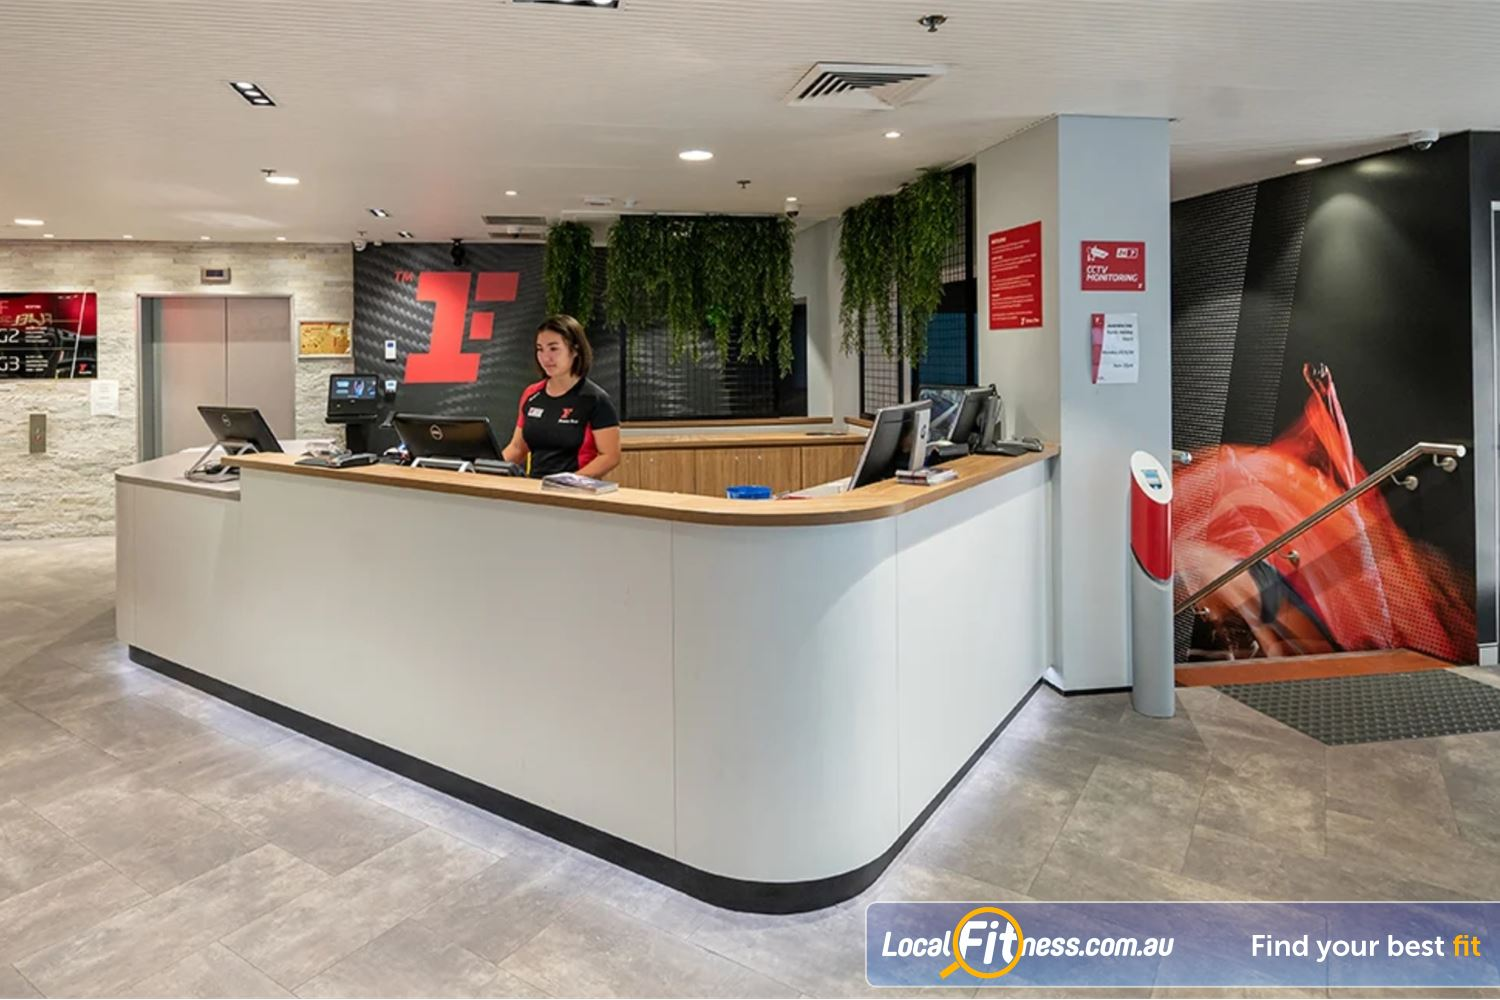 Fitness First Platinum George St. Near Alexandria Mc Our team are ready to help you find your fit.